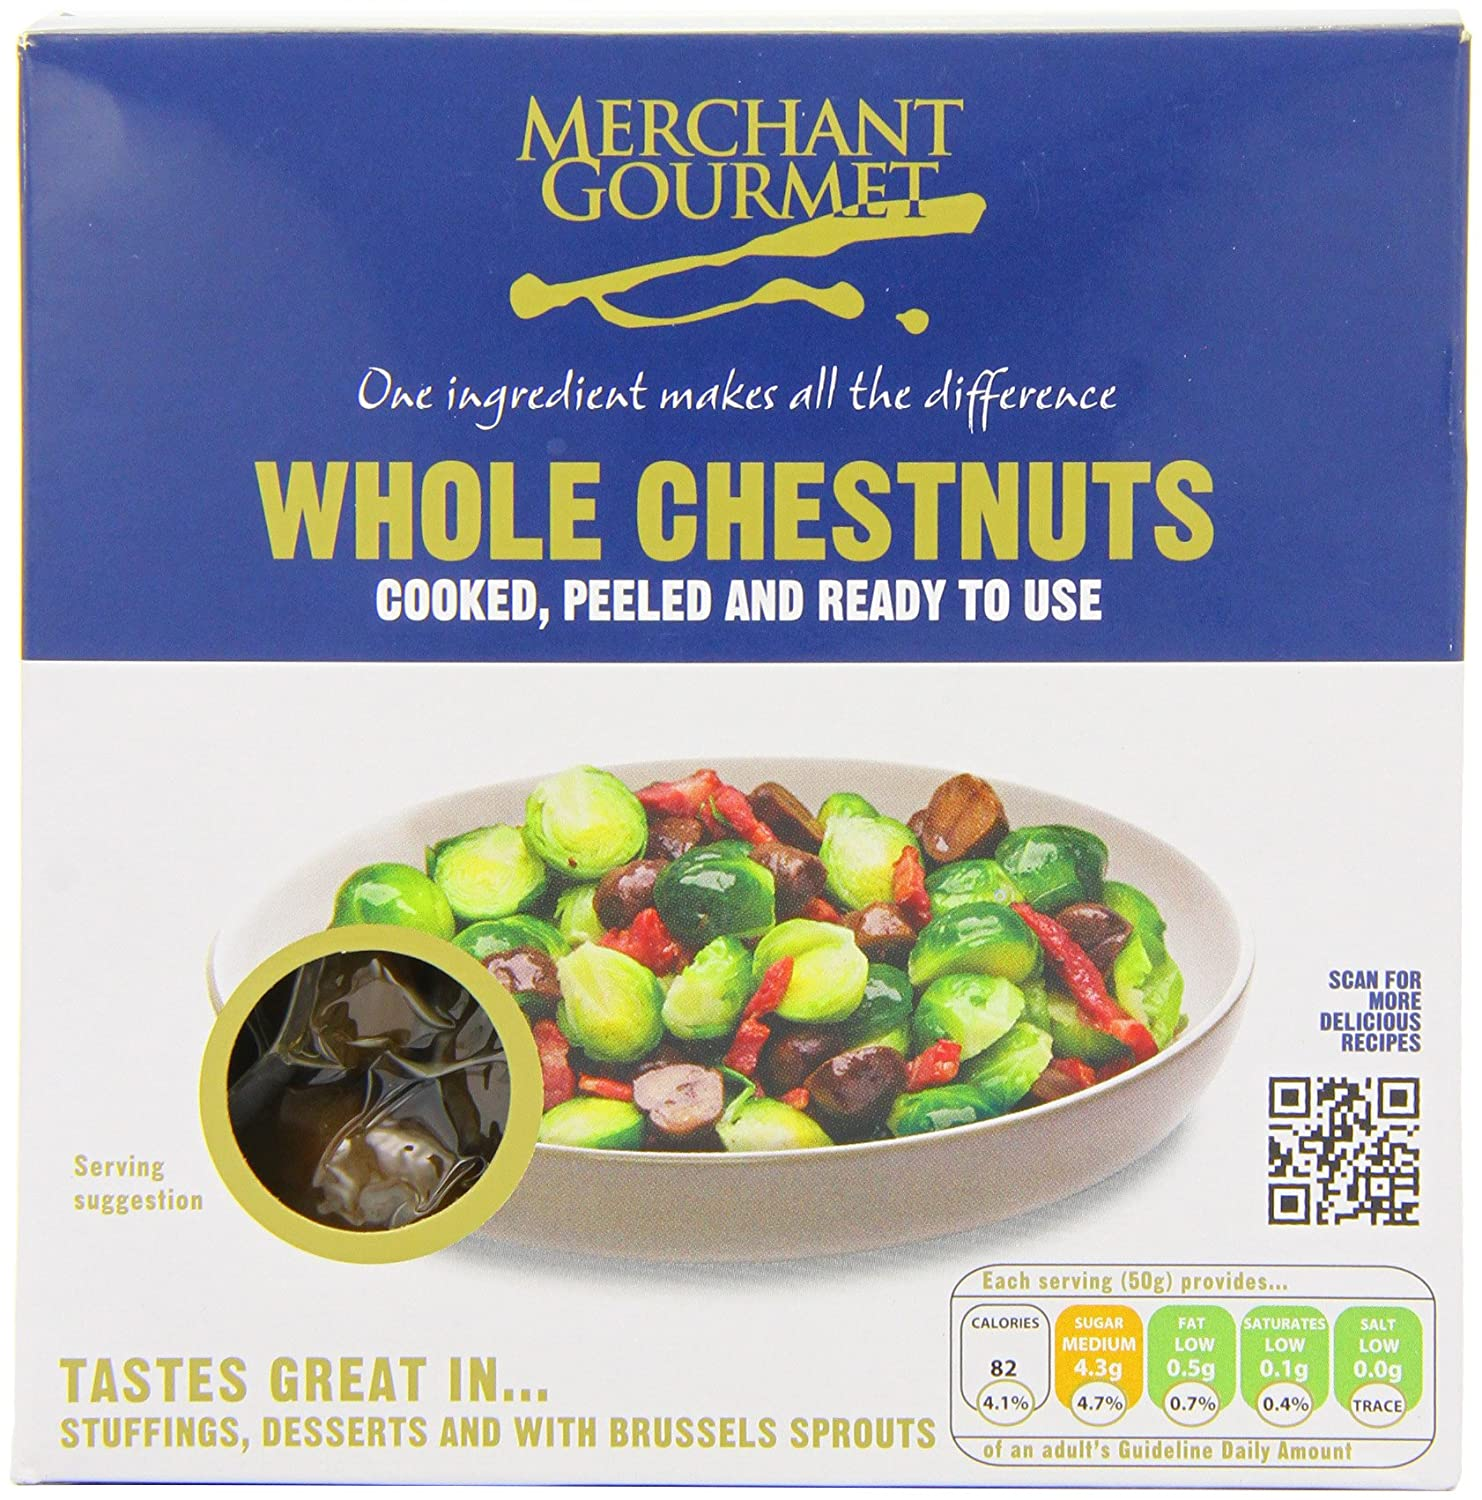 Merchant Gourmet Whole Chestnuts 200 g (Pack of 4): Amazon.co.uk ...